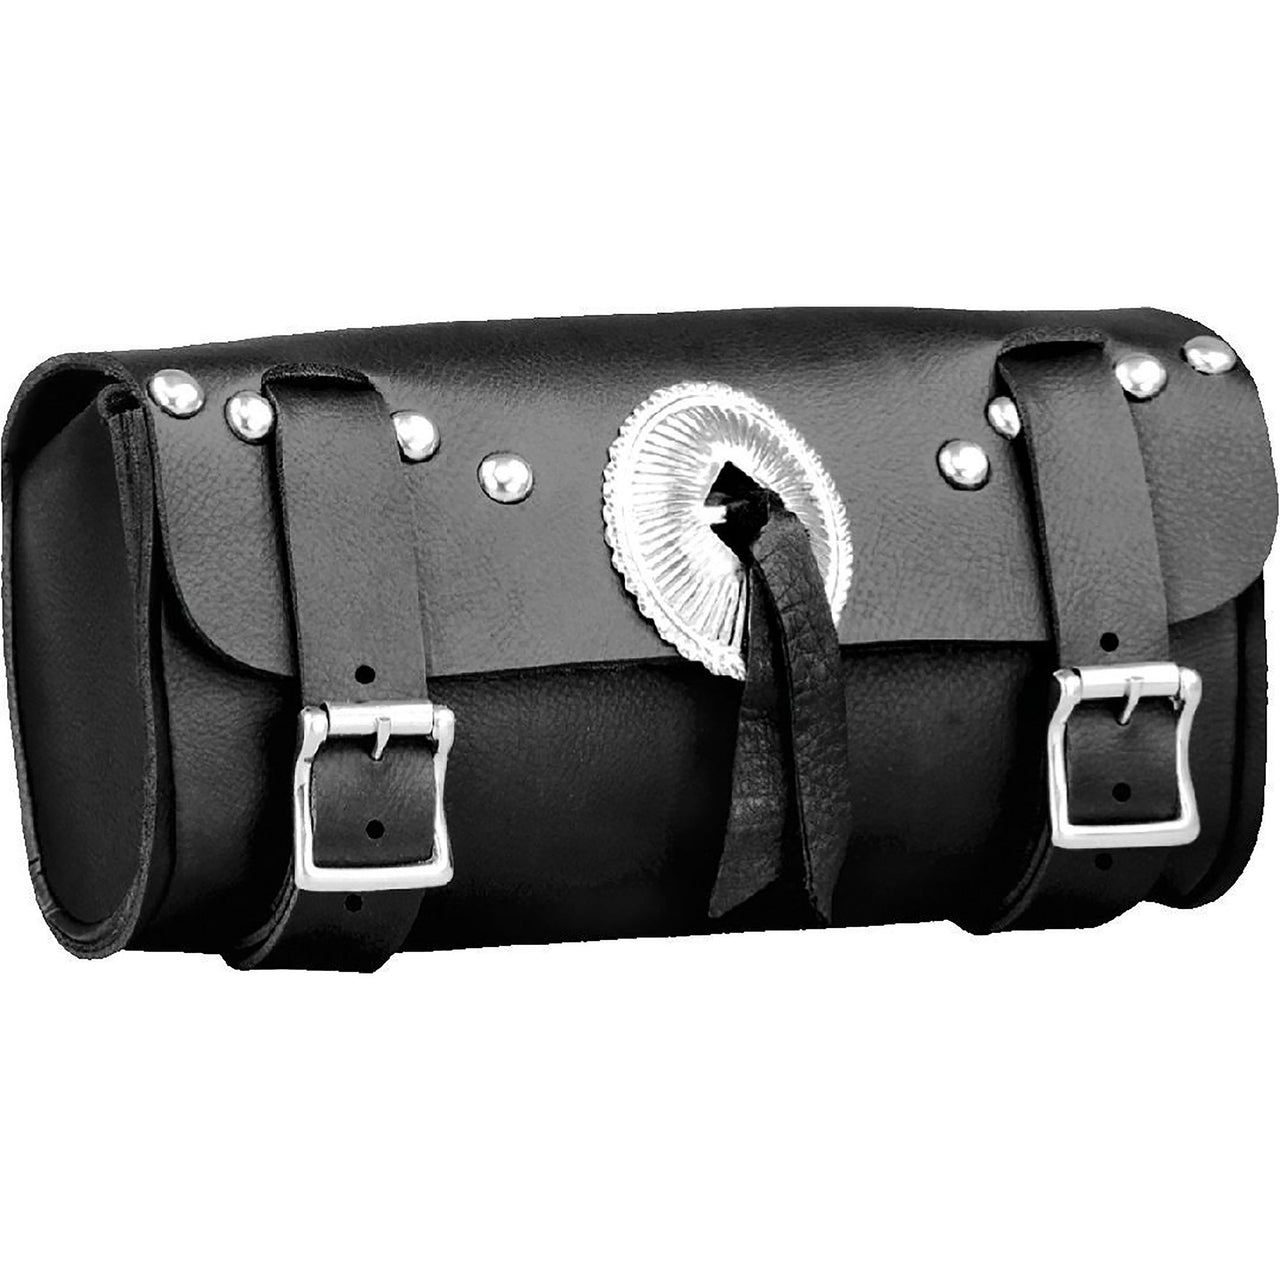 Double Buckle PVC Tool Bag w/ Concho & Quick Release(10X4.5X3.25) - HighwayLeather